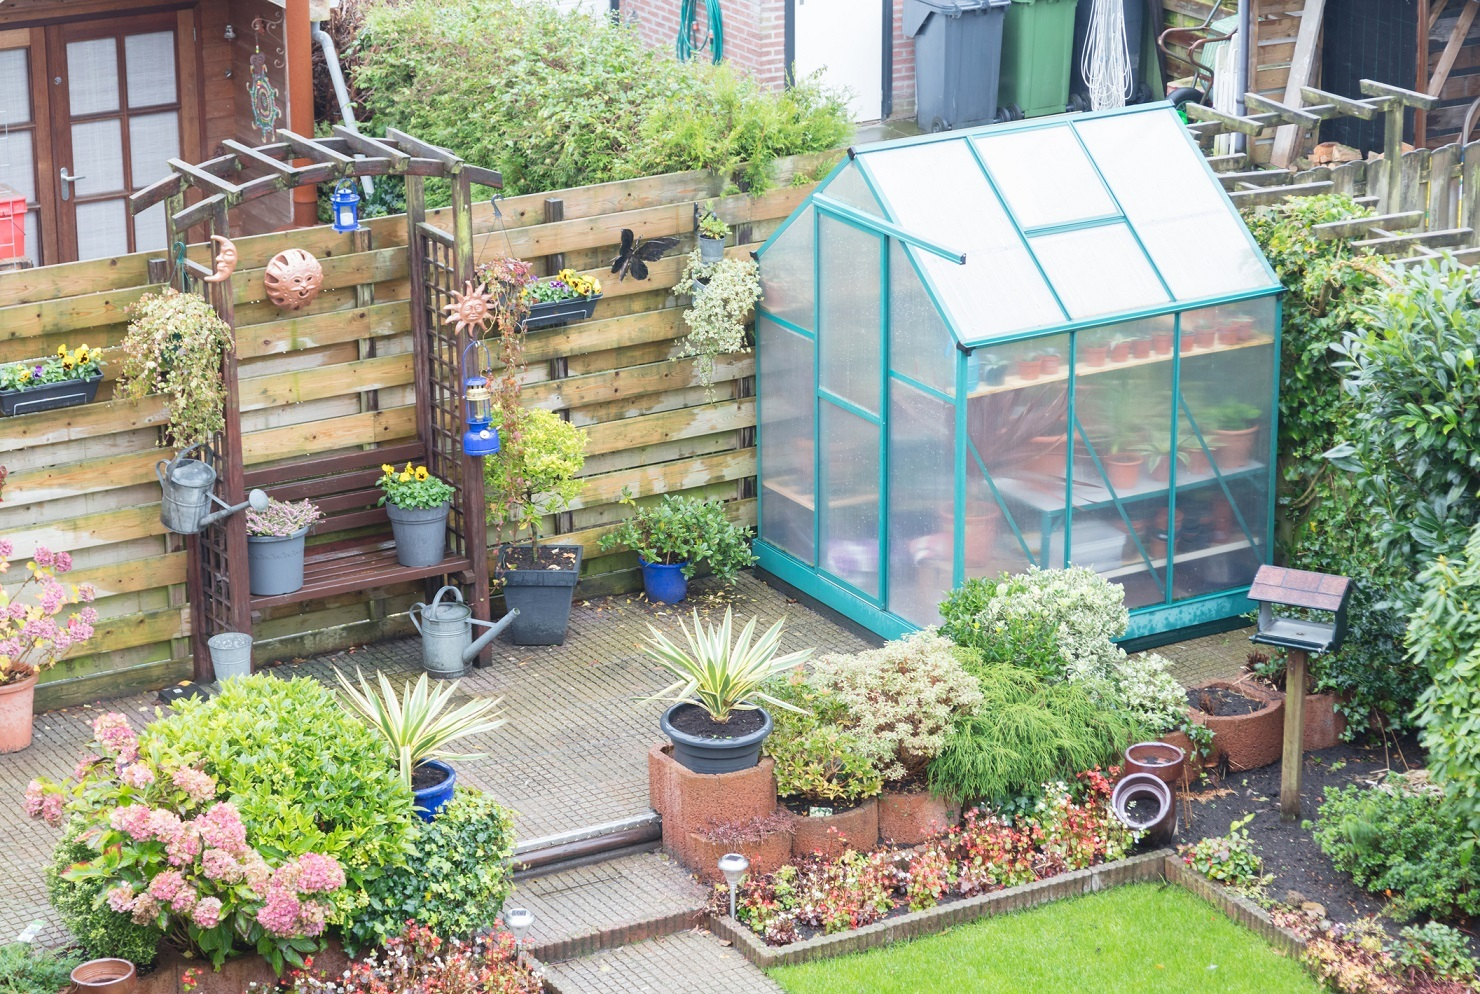 Small greenhouse in a garden